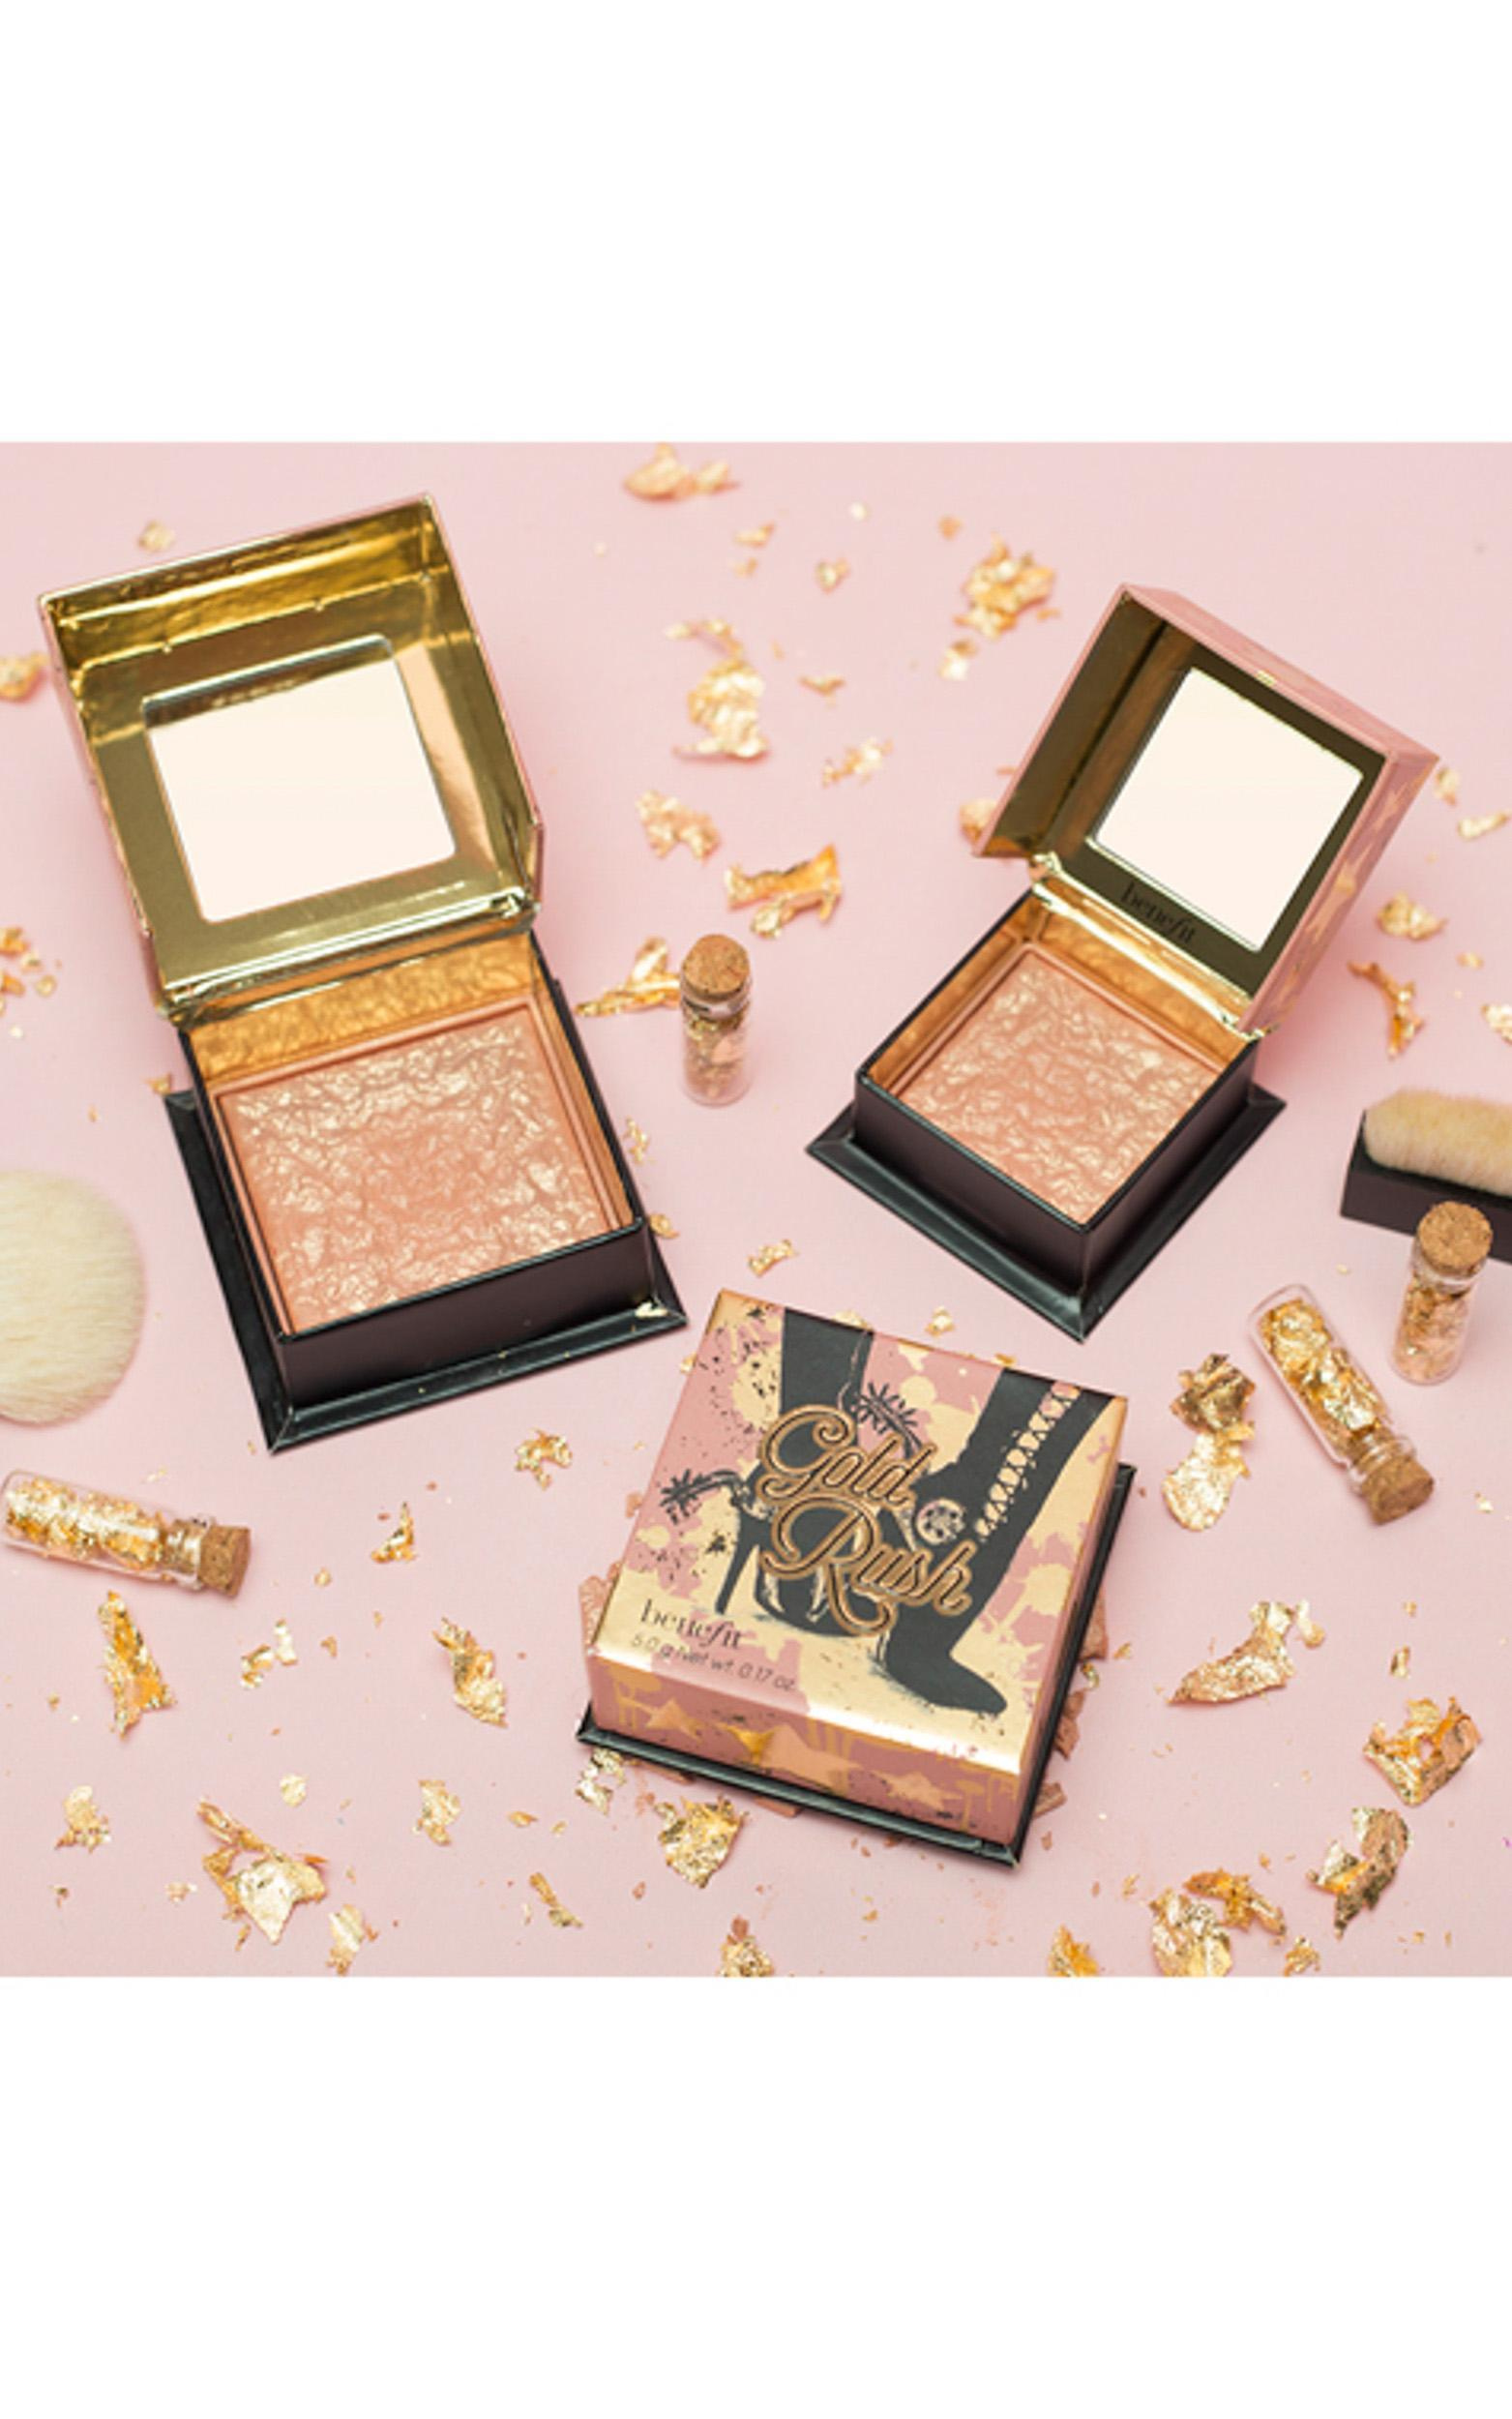 Benefit - Gold Rush Blush Mini in Golden Nectar, , hi-res image number null